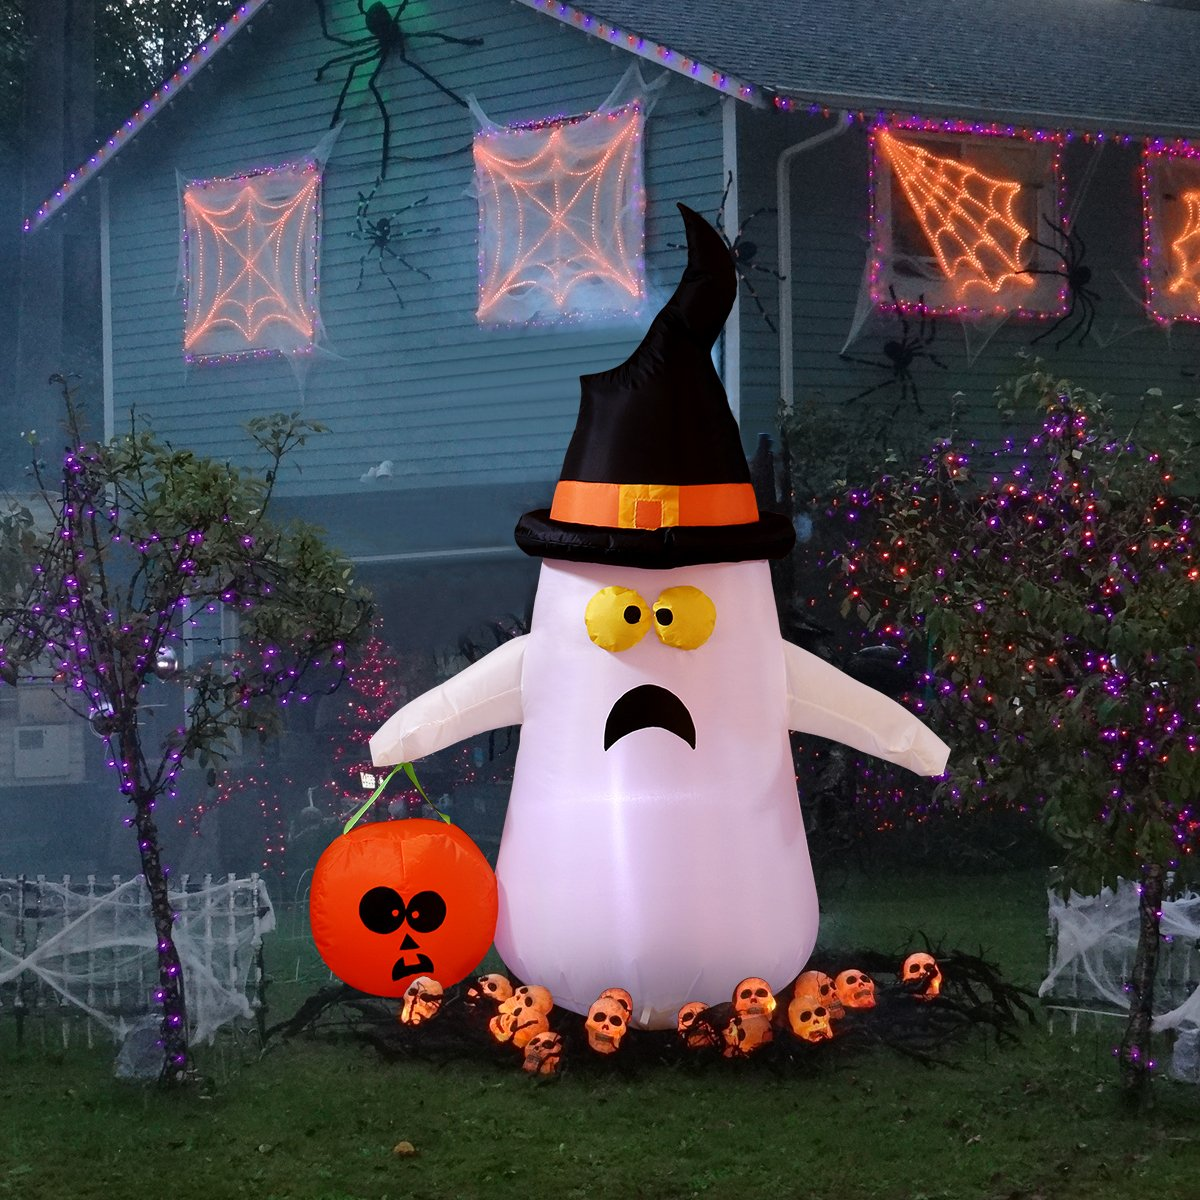 YUNLIGHTS 4 Foot Halloween Inflatable Ghost, Lighted Blow Up Ghost with Jack-O-Lantern Pumpkin Witch Hat for Indoor Outdoor Yard Lawn Art Halloween Decoration